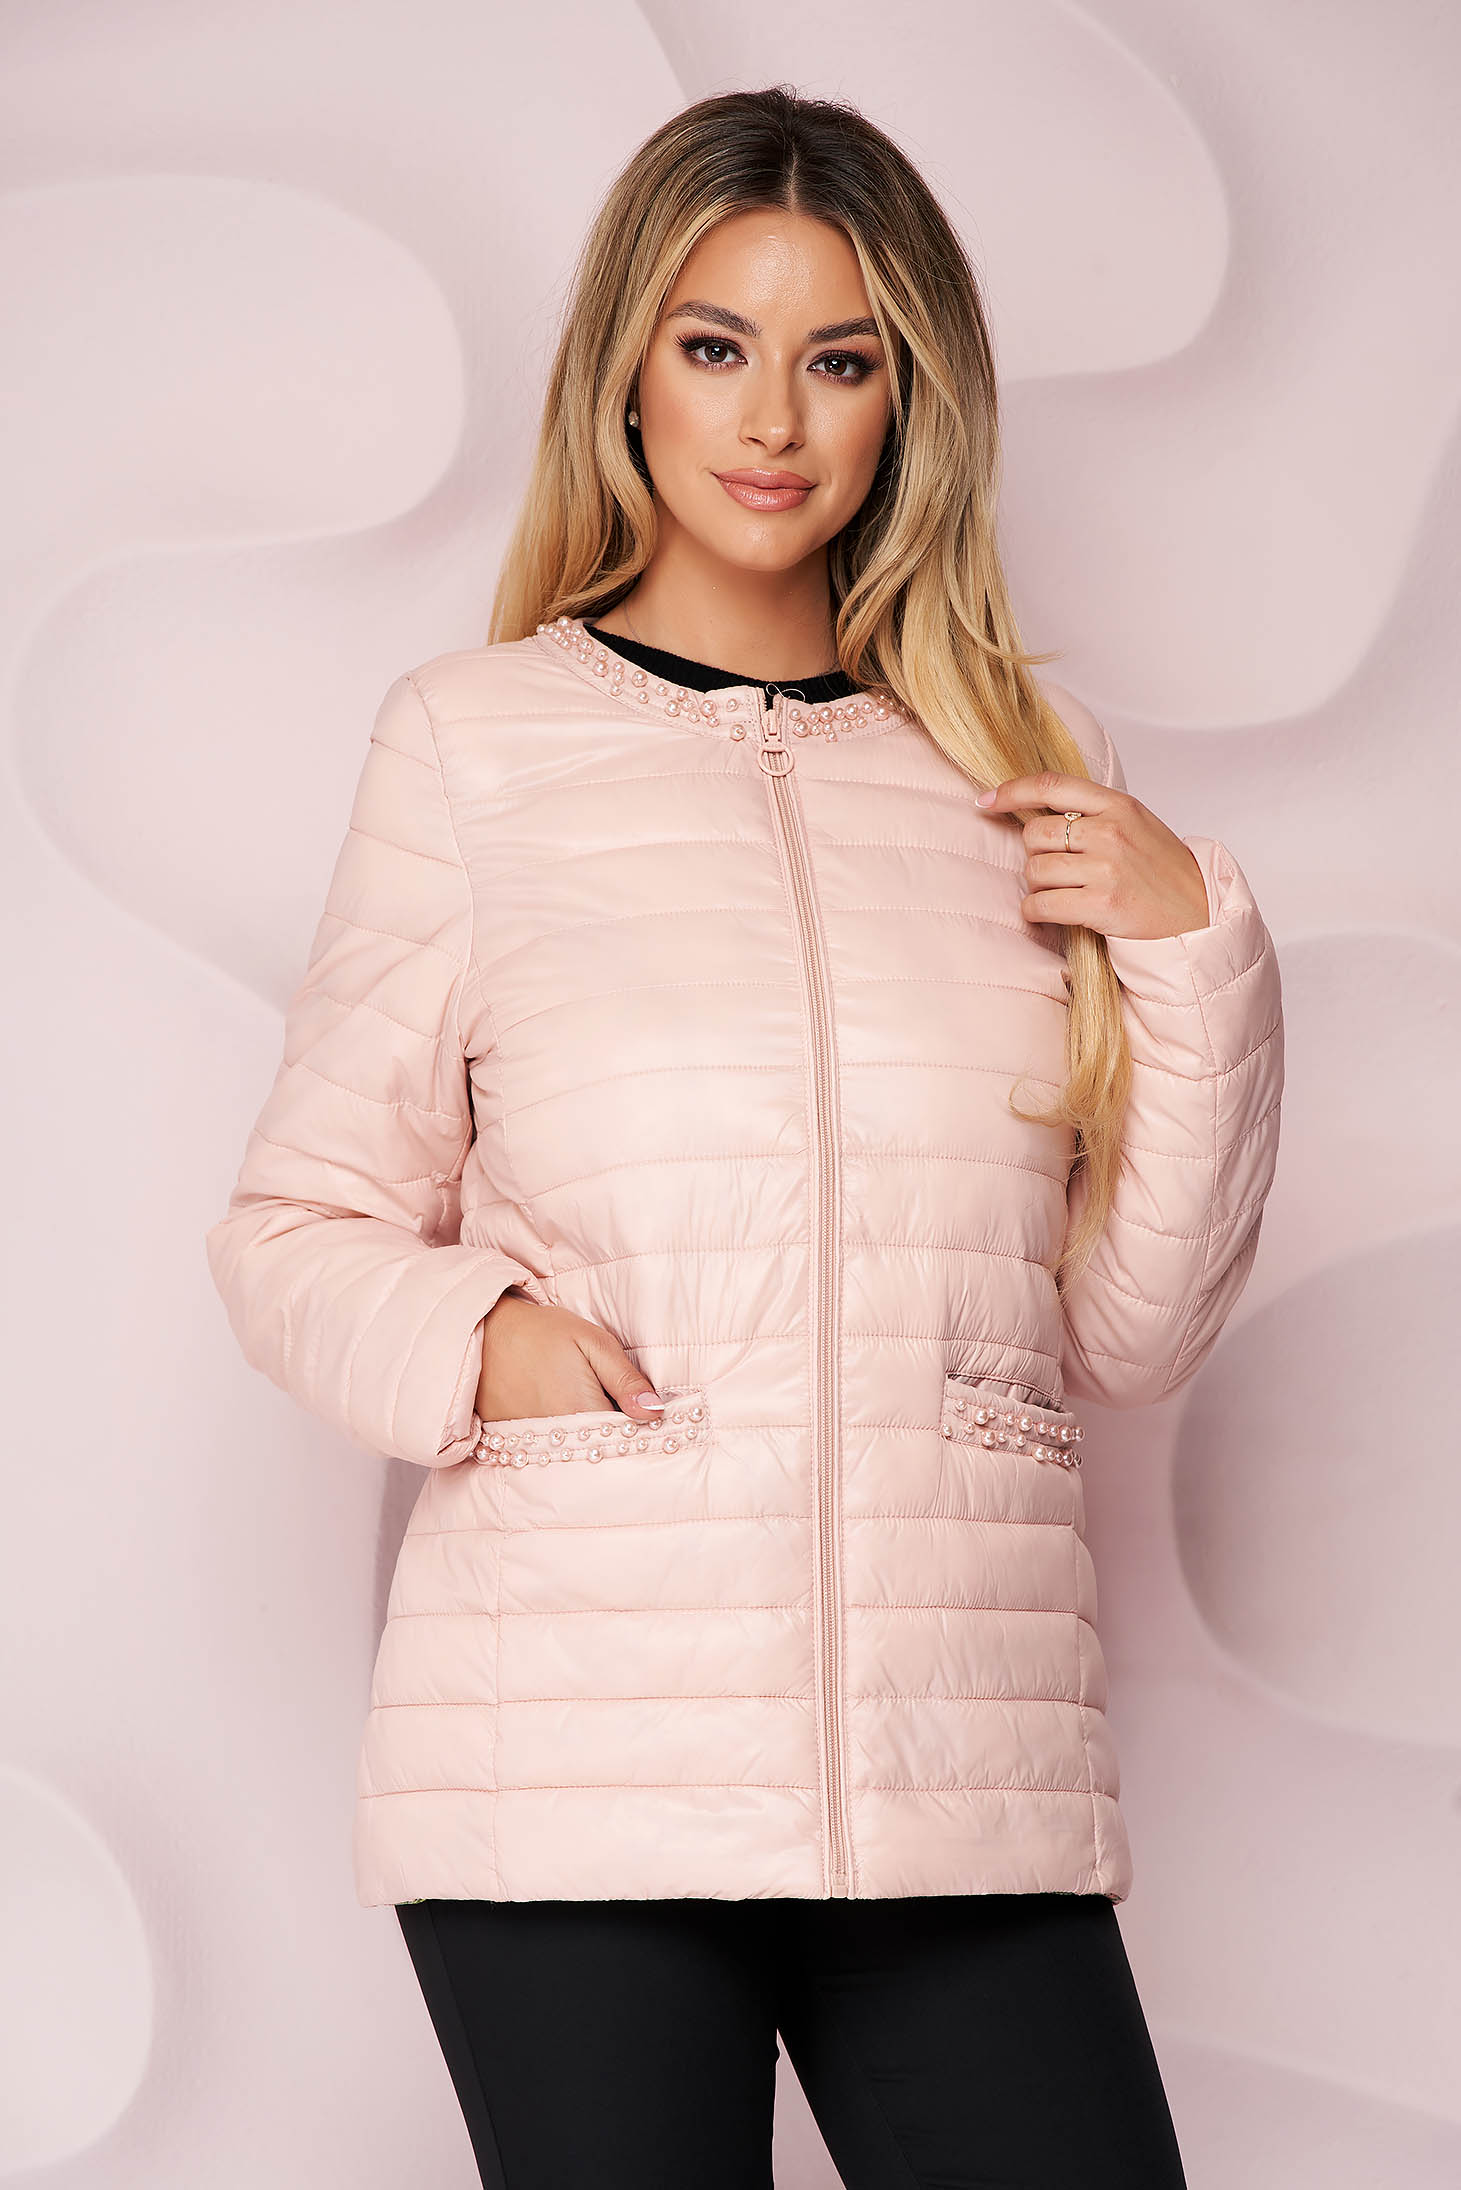 Lightpink jacket from slicker thin fabric with pearls straight